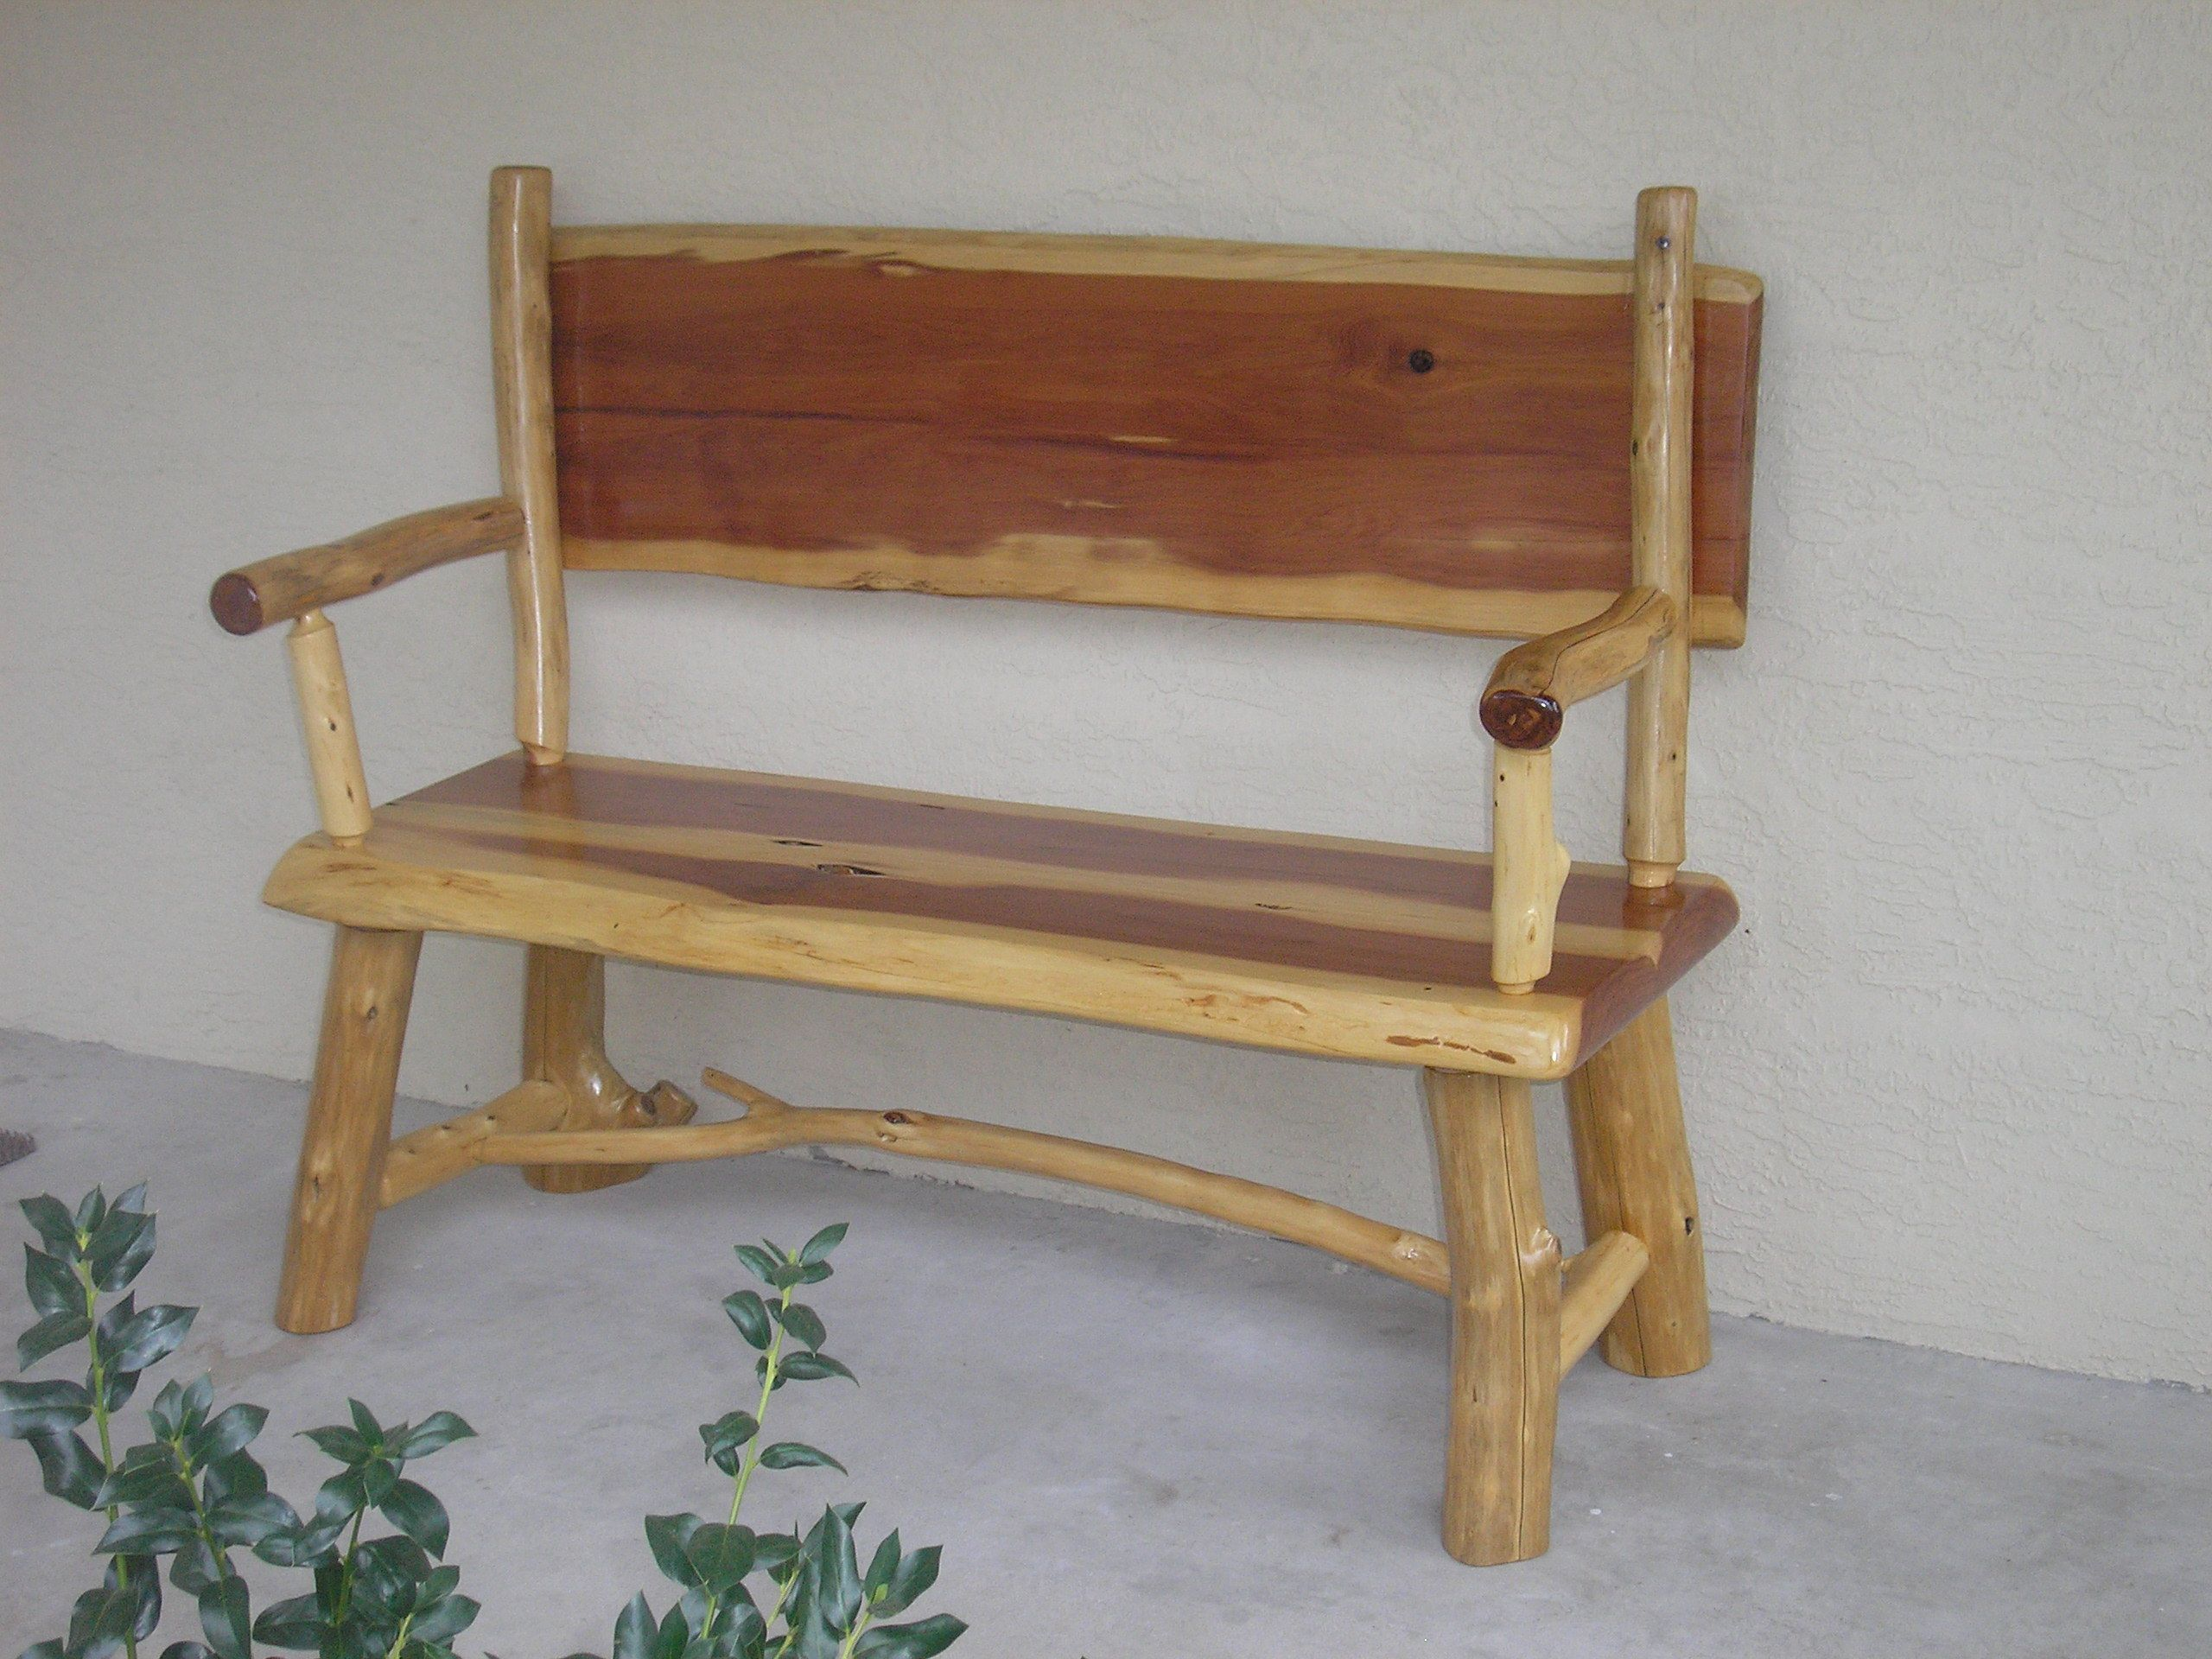 Rustic Furniture Rustic Wood Log Bench Picture Cool Furniture Pinterest Rustic Furniture